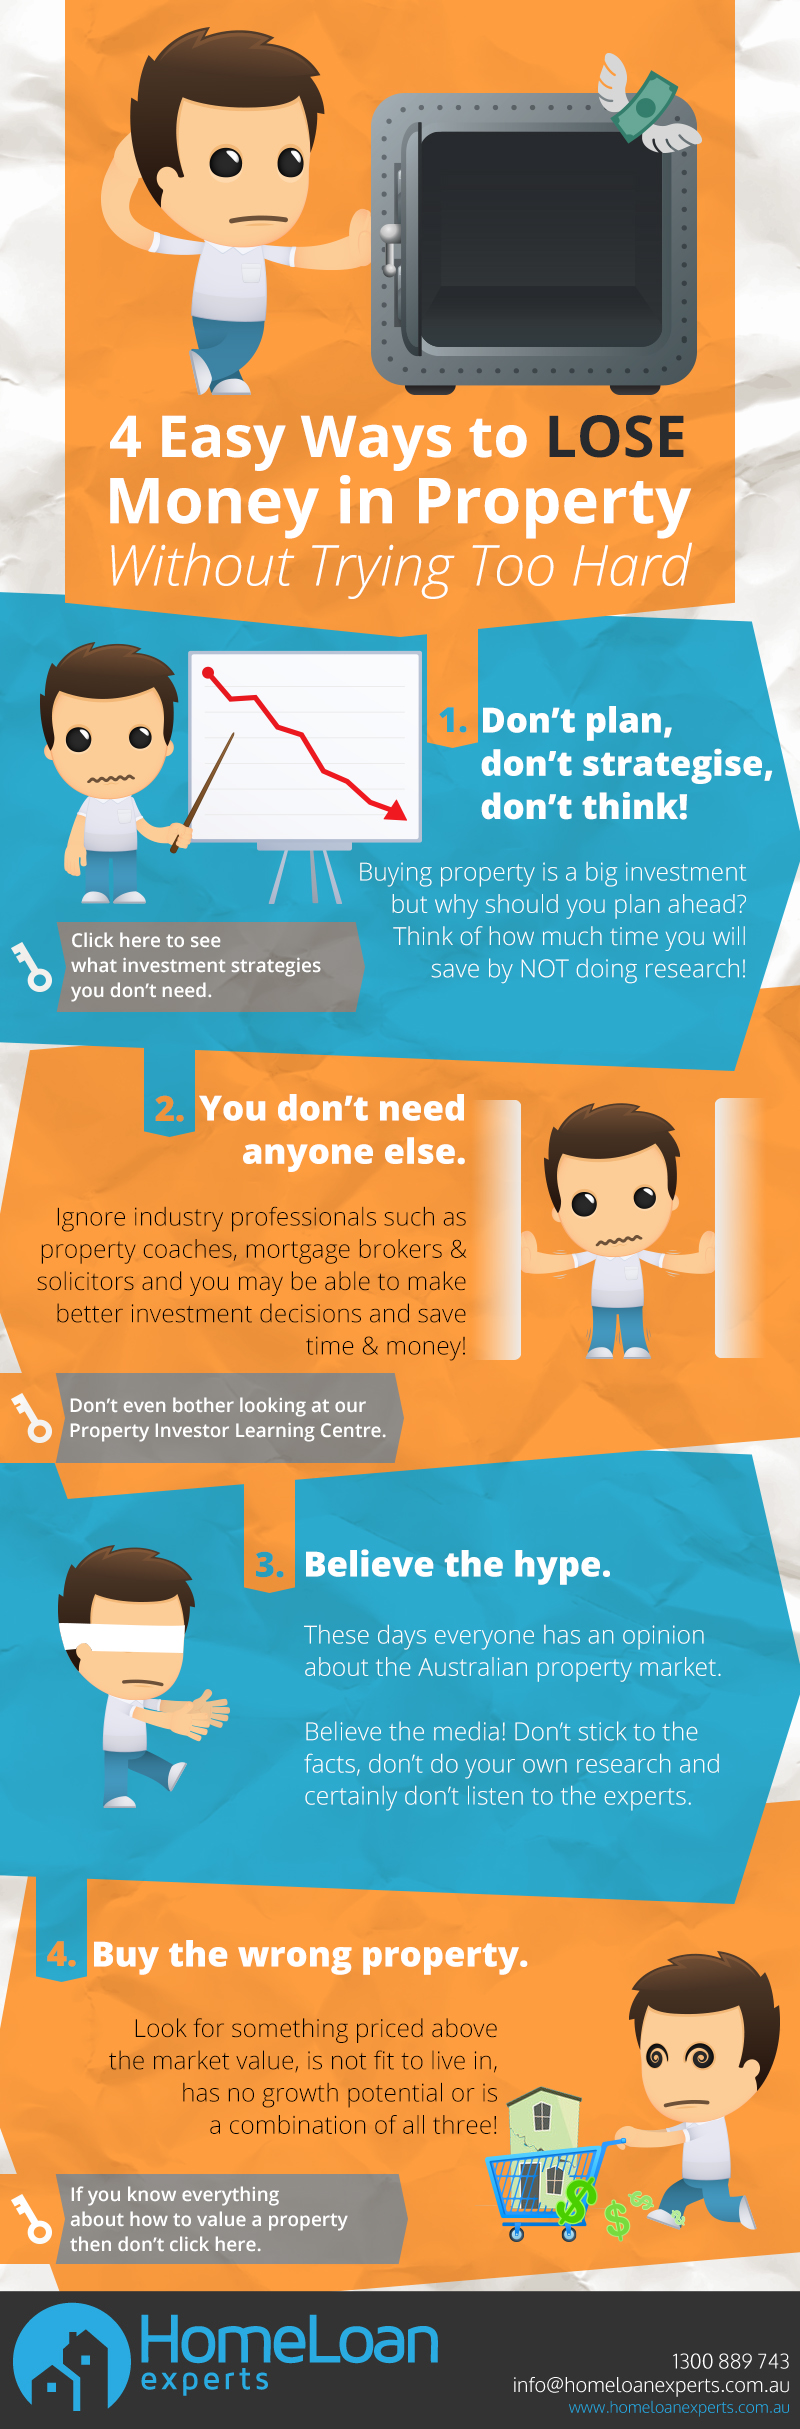 4 Easy Ways to loose money in Property Without Trying Too Hard infographic